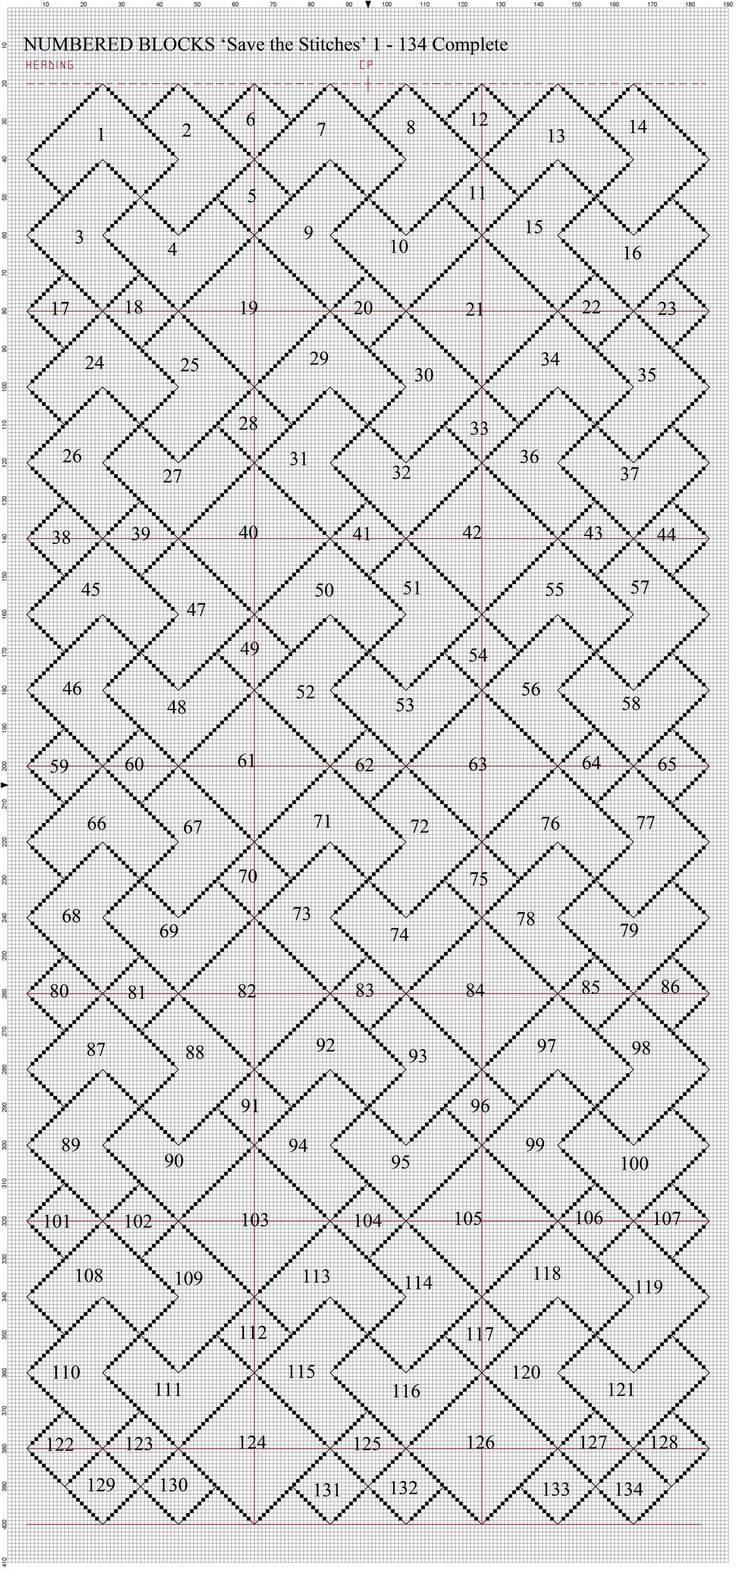 17 Best images about Blackwork embroidery on Pinterest